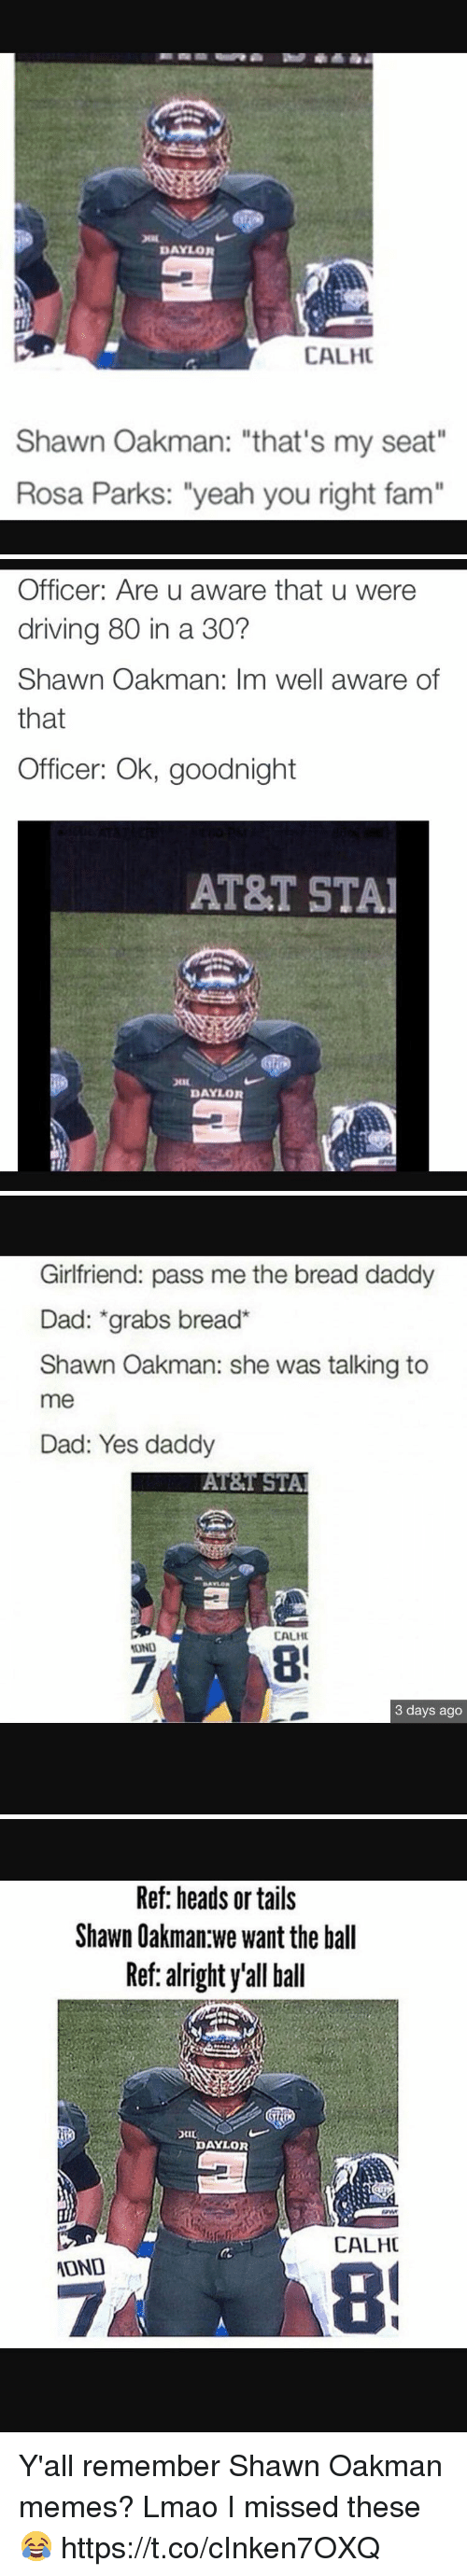 "Dad, Driving, and Fam: DAYLOR  CALHC  Shawn Oakman: ""that's my seat""  Rosa Parks: ""yeah you right fam""   Officer: Are u aware that u were  driving 80 in a 30?  Shawn Oakman: Im well aware of  that  Officer: Ok, goodnight  AT&T STAI  DAYLOR   Girlfriend: pass me the bread daddy  Dad: grabs bread  Shawn Oakman: she was talking to  me  Dad: Yes daddy  AT&T STAl  CALHU  3 days ago   Ref: heads or tails  Shawn Oakman we want the ball  Ref: alright y'all ball  DAYLOR  CALHC  ATOND Y'all remember Shawn Oakman memes? Lmao I missed these😂 https://t.co/cInken7OXQ"